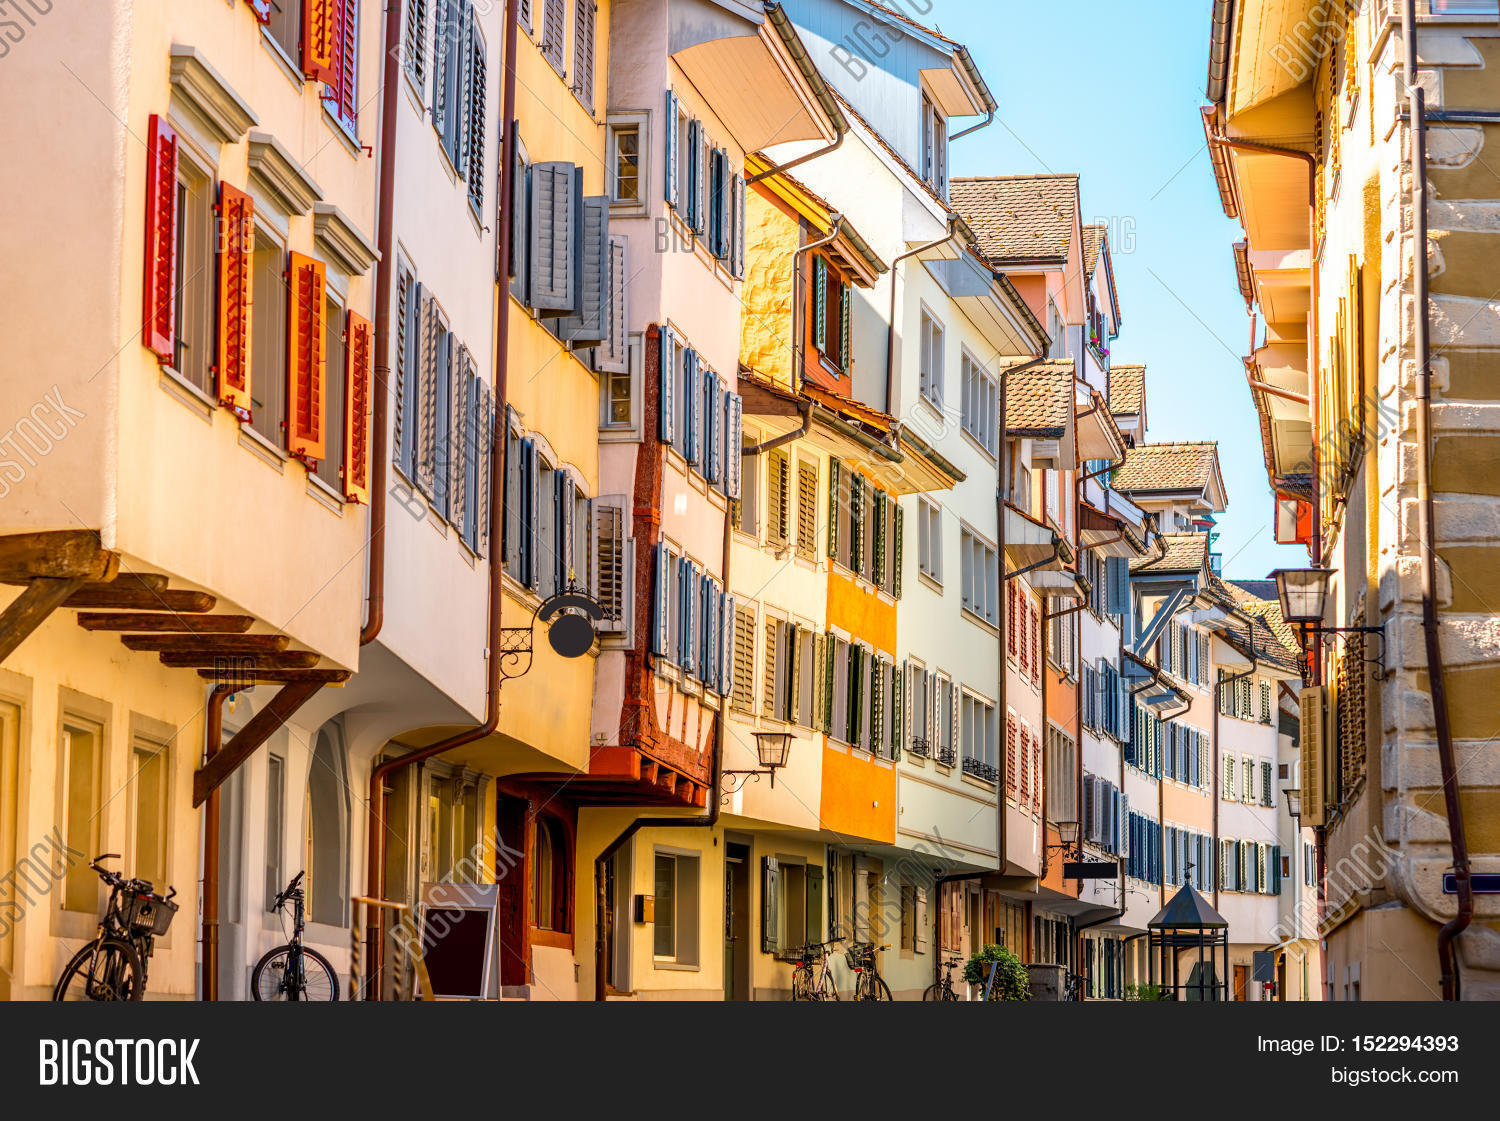 Beautiful colorful buildings zug image photo bigstock for Architecture suisse